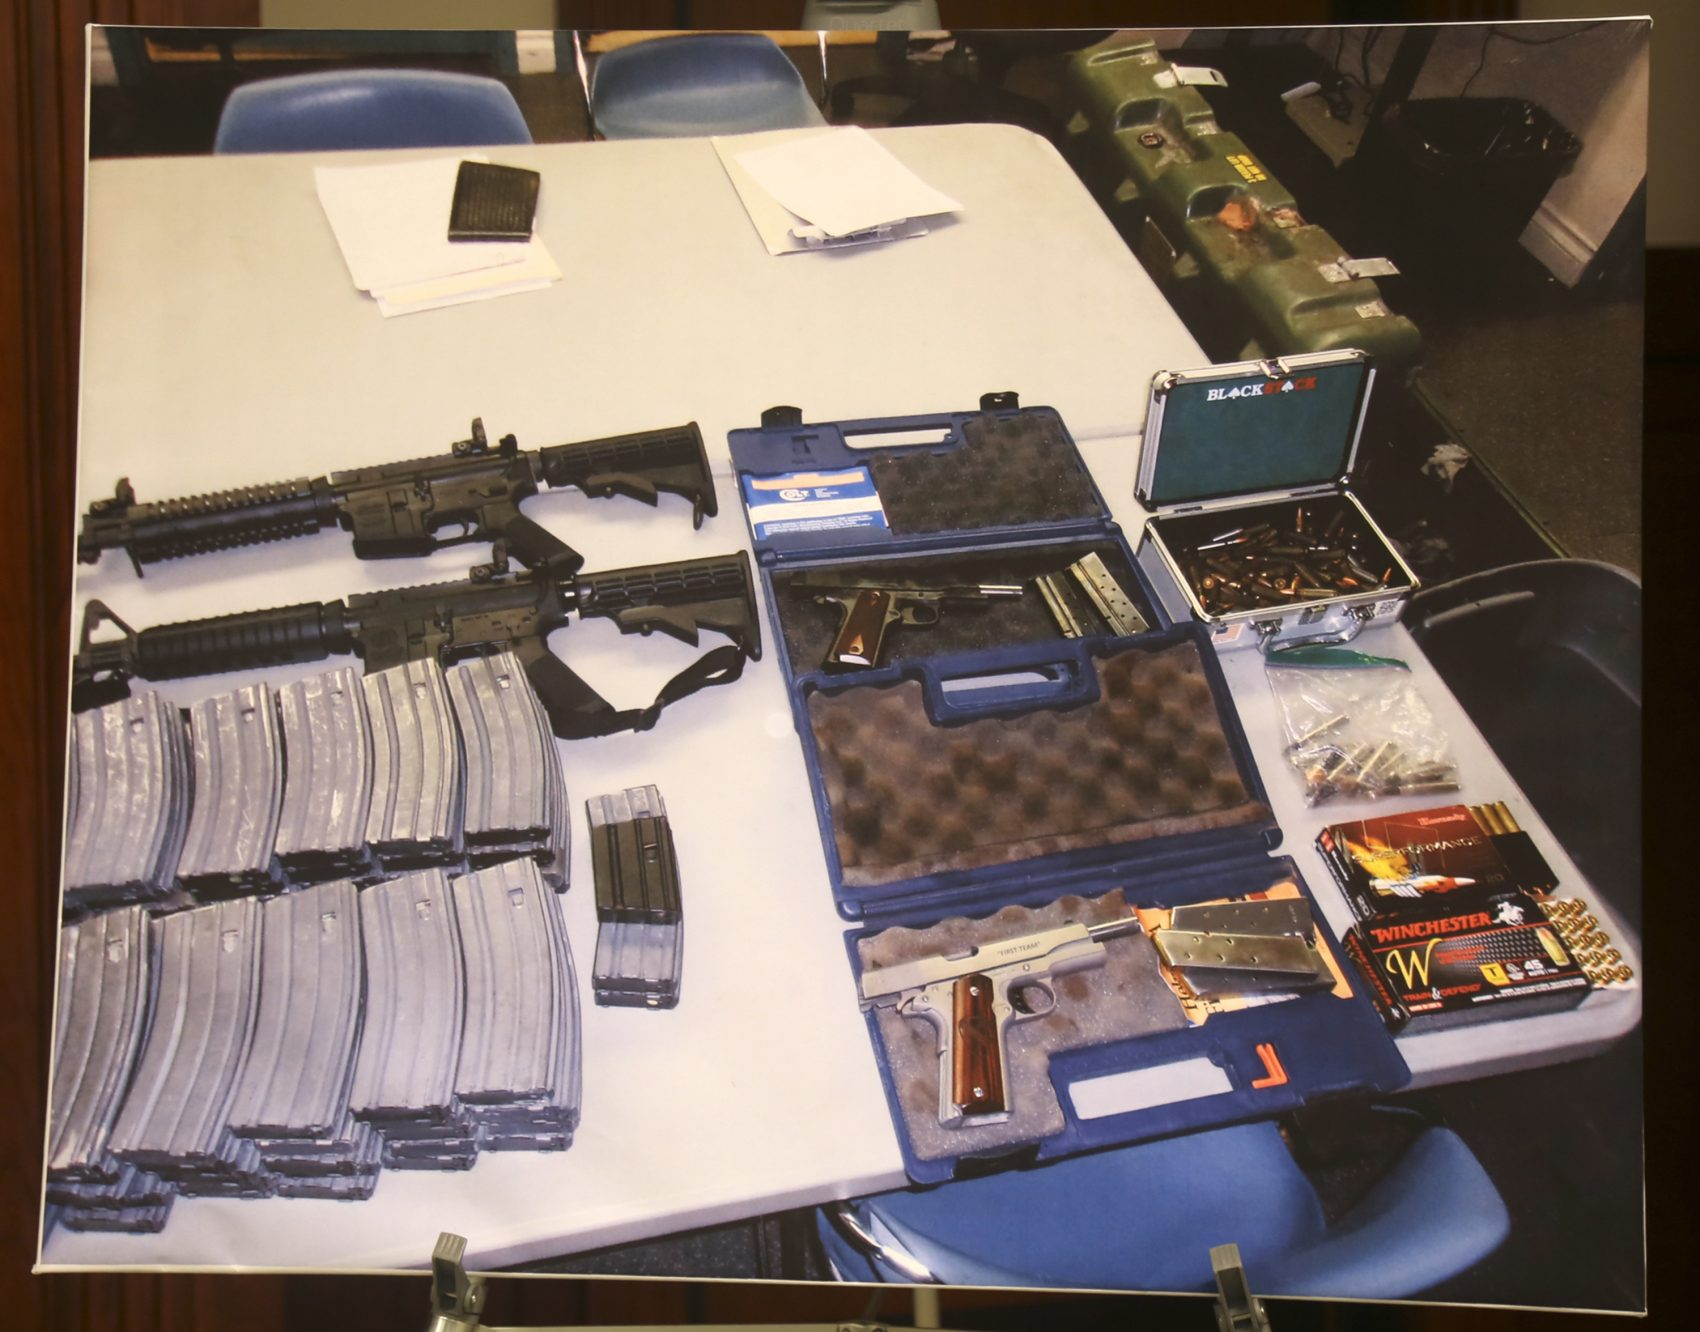 """A confiscated cache of weapons is displayed at a news conference in Los Angeles on Feb. 21. Authorities say they've thwarted a student's plot for a mass shooting at a Southern California high school. Authorities say a security guard at El Camino High School in Whittier overhead a """"disgruntled student"""" threaten to open fire on the school on Friday, just two days after 17 people were gunned down at a Florida high school. Deputies discovered """"multiple guns and ammunition"""" after searching the student's home. (Mike Balsamo/AP)"""